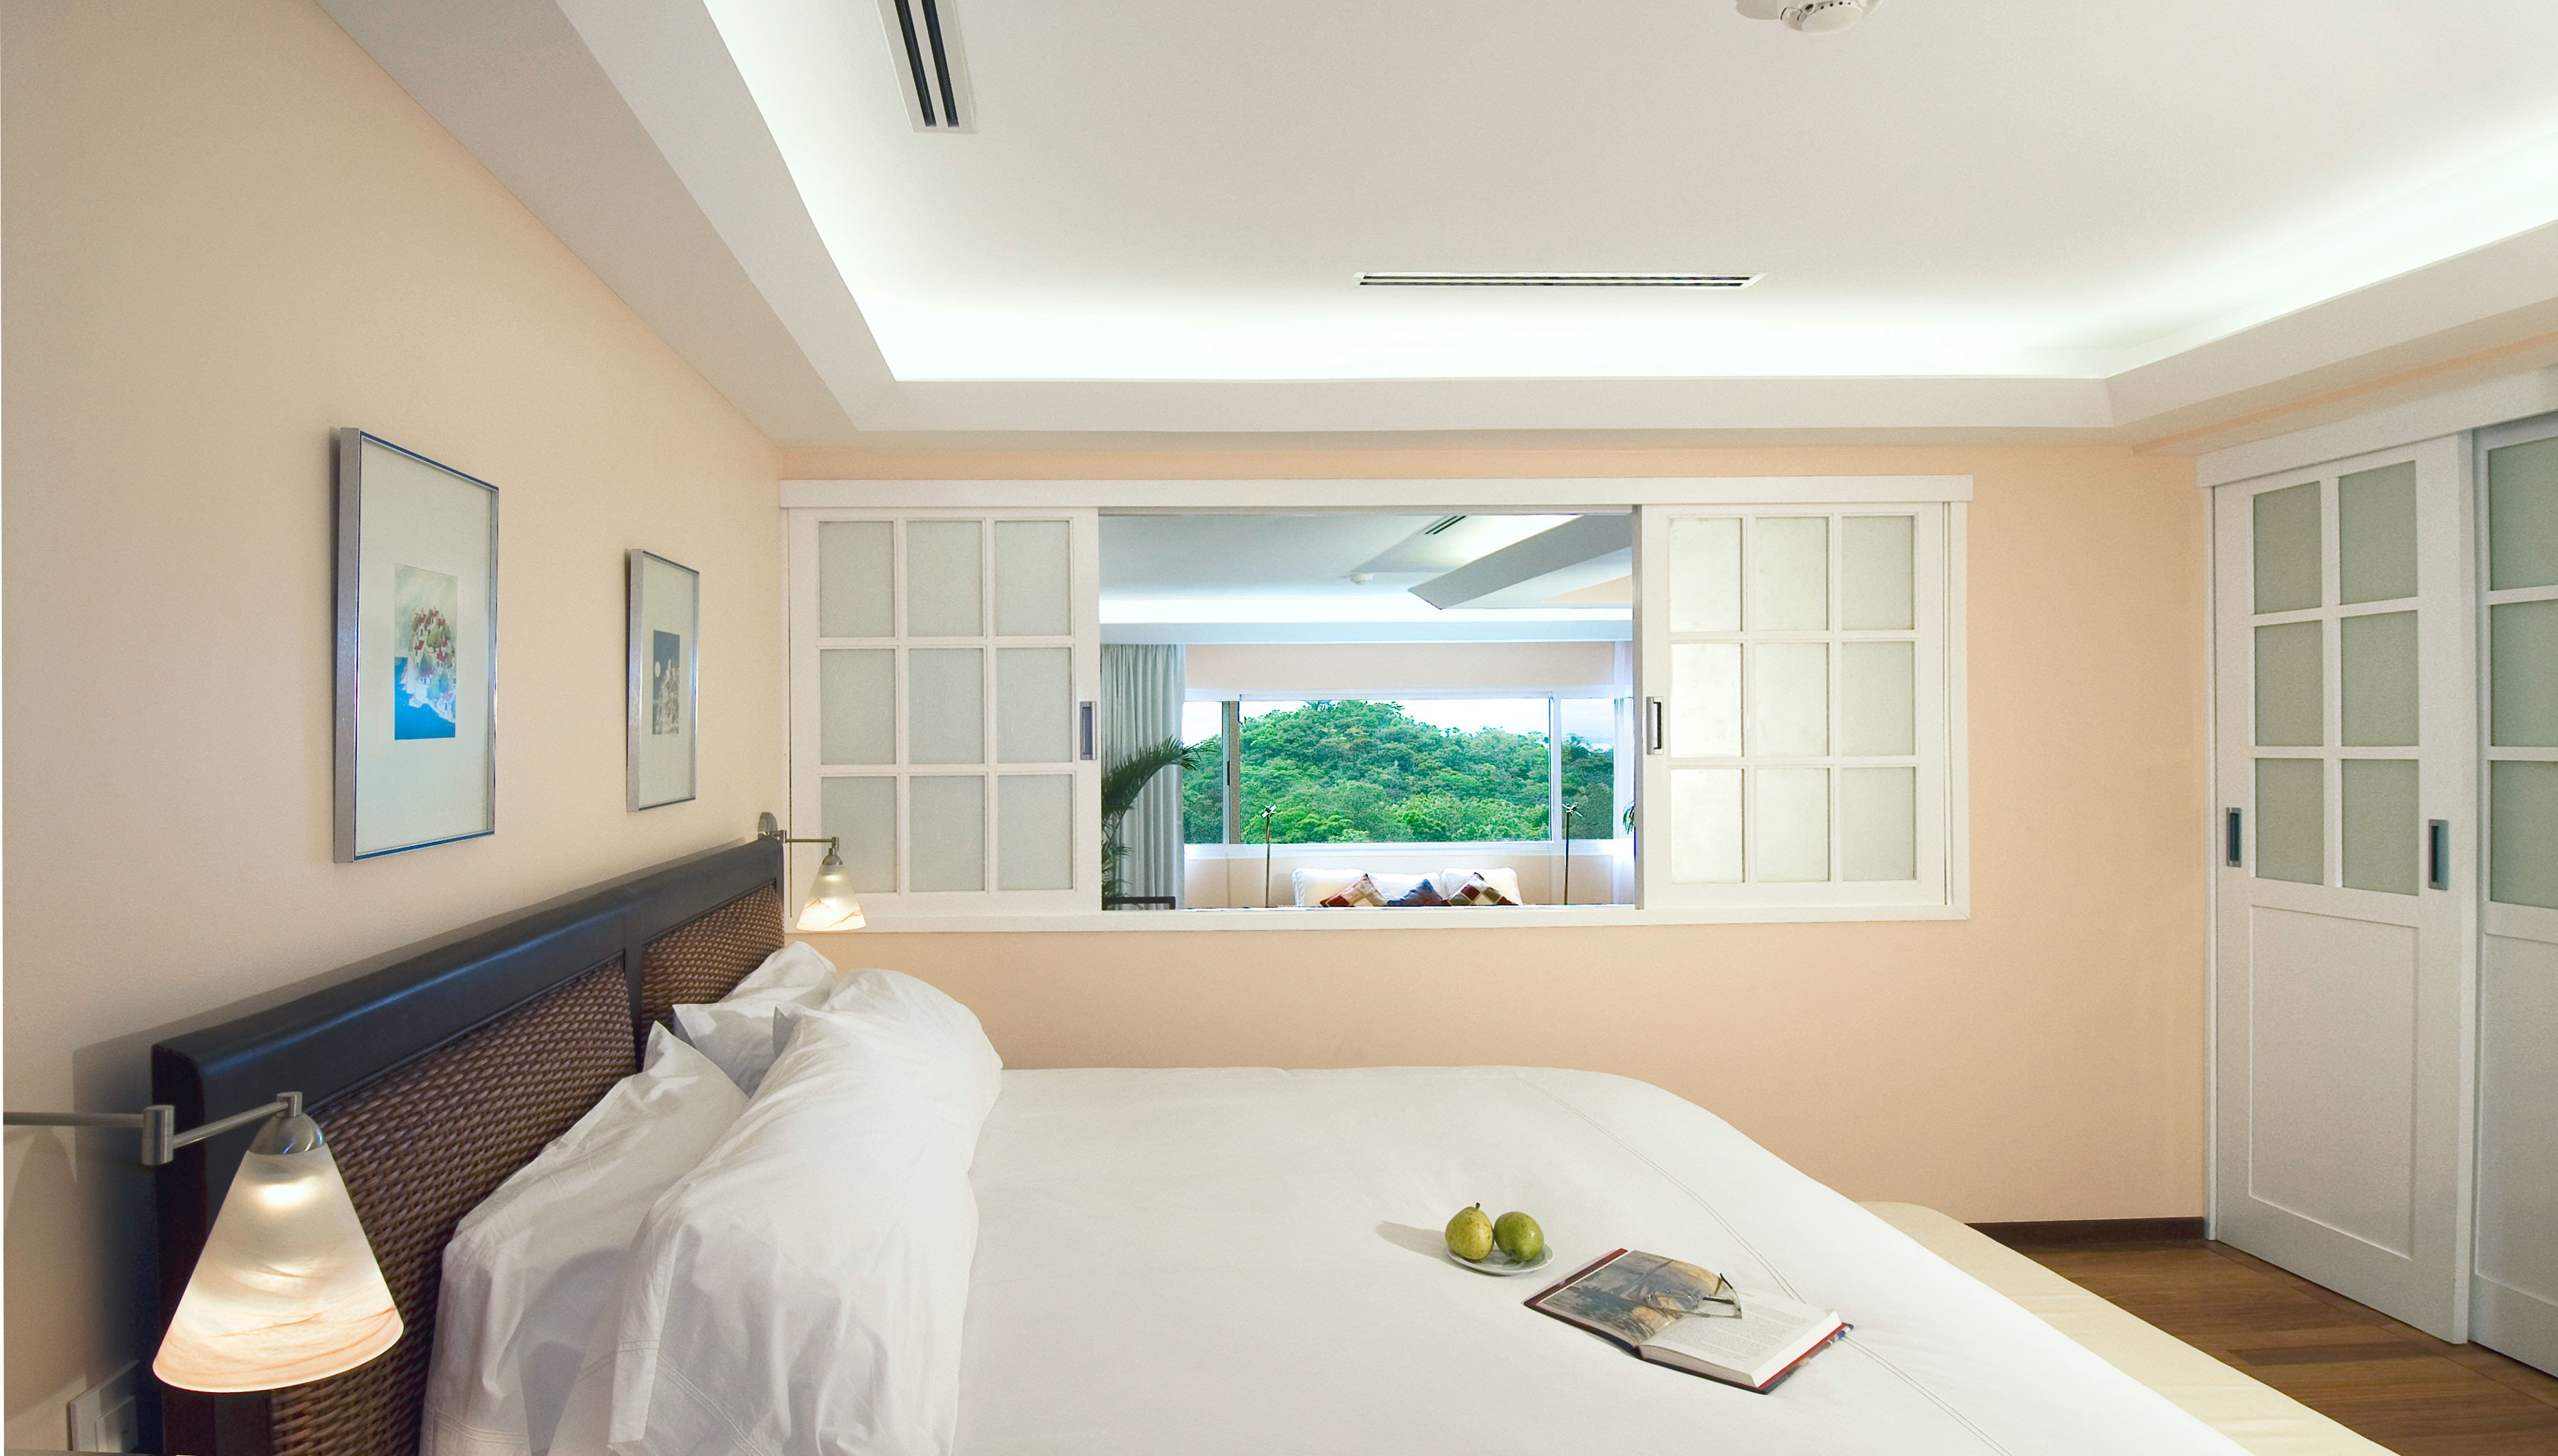 Bedroom Elegant Hotels Jungle Scenic views indoor wall window ceiling room floor property bed home interior design real estate cottage living room white estate apartment clean furniture